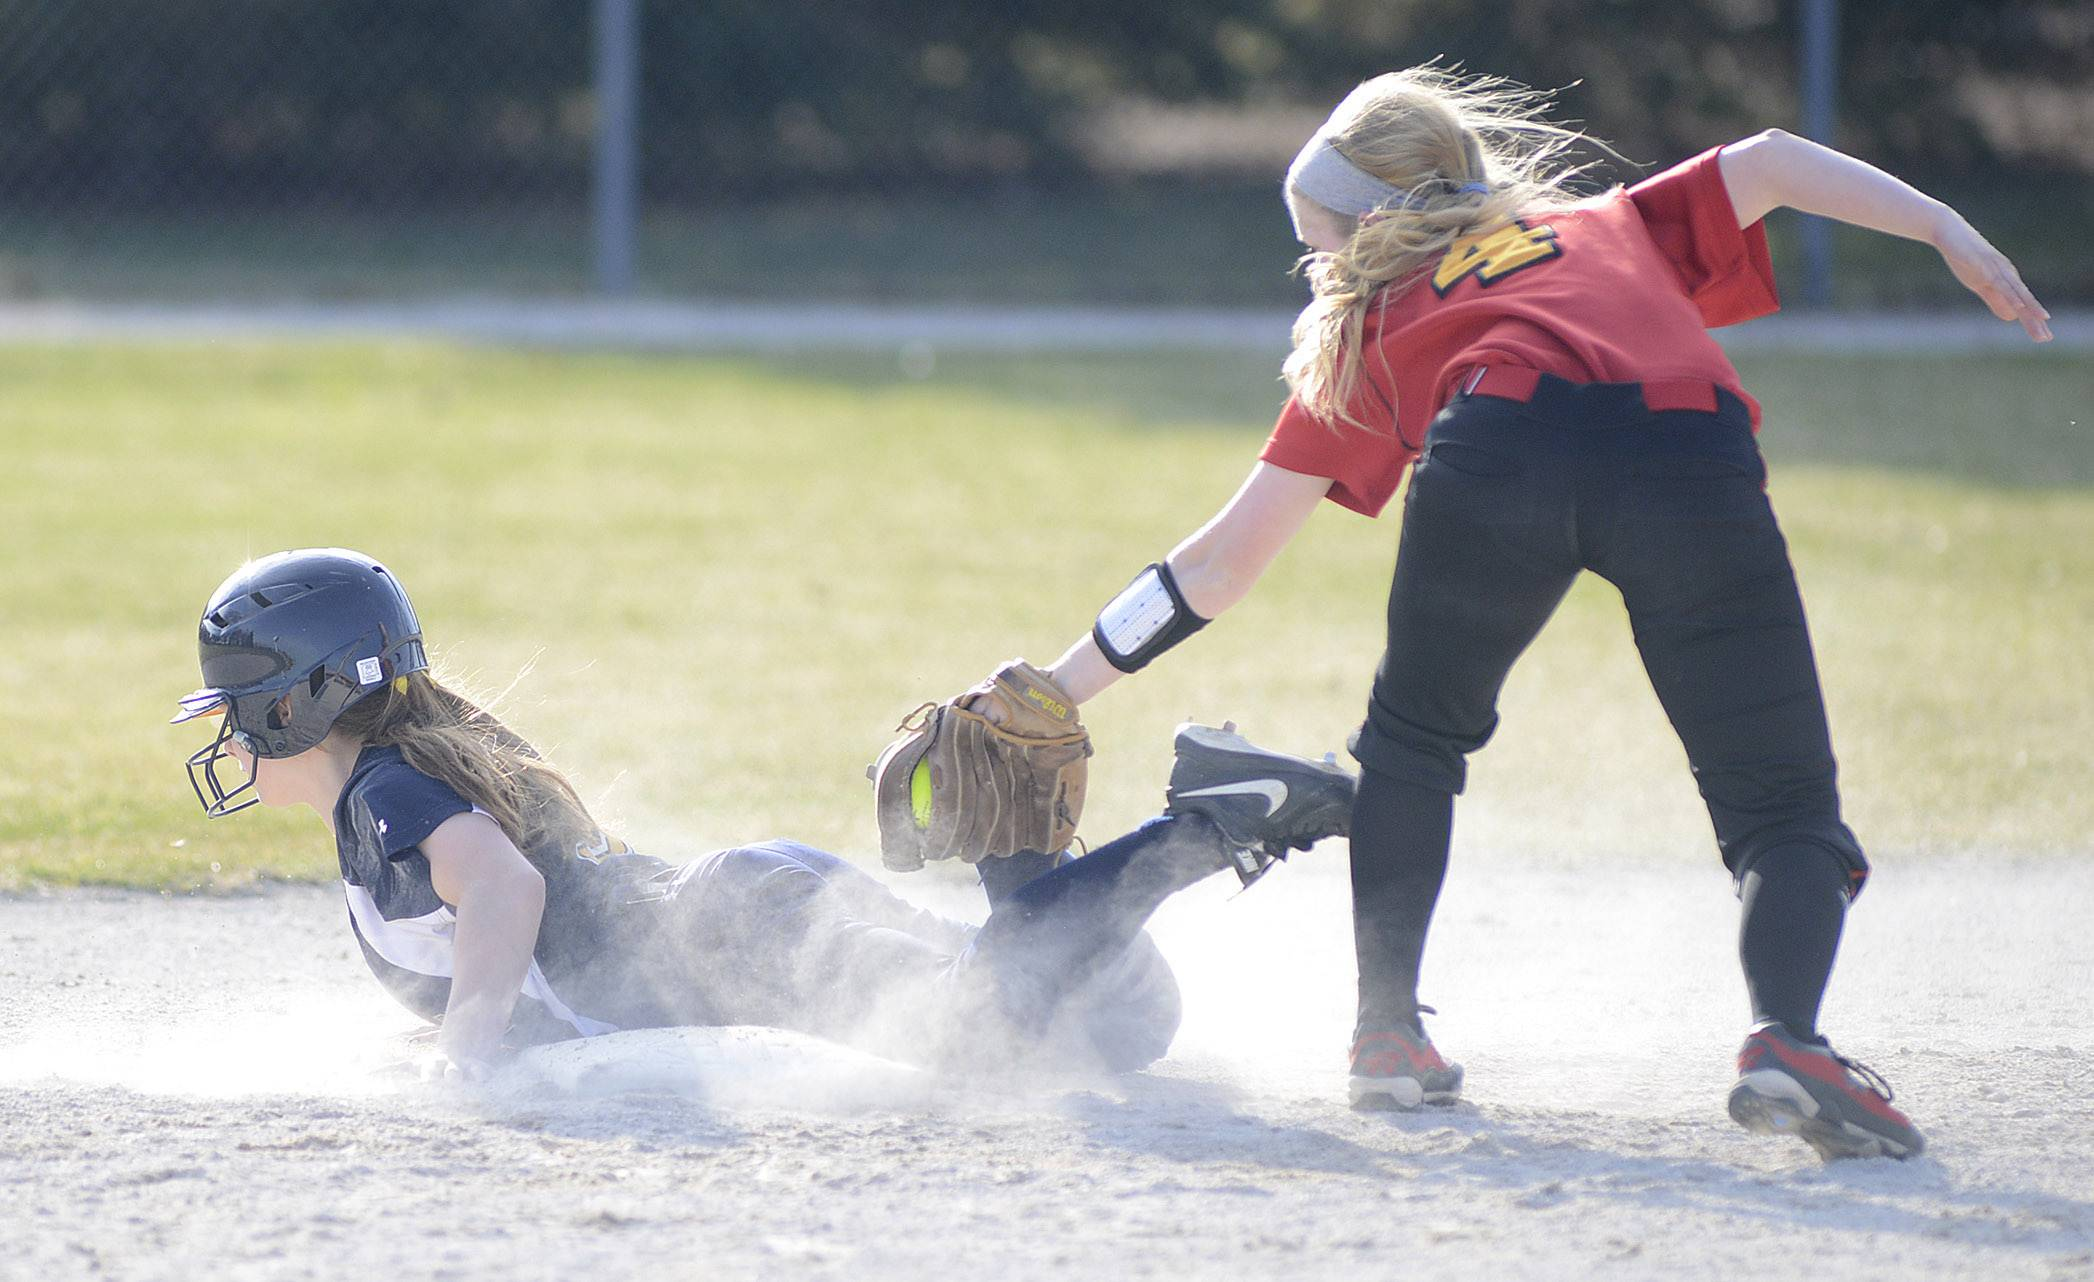 Neuqua Valley's Jenny Budds beats the tag from Batavia's Elyse Burns.